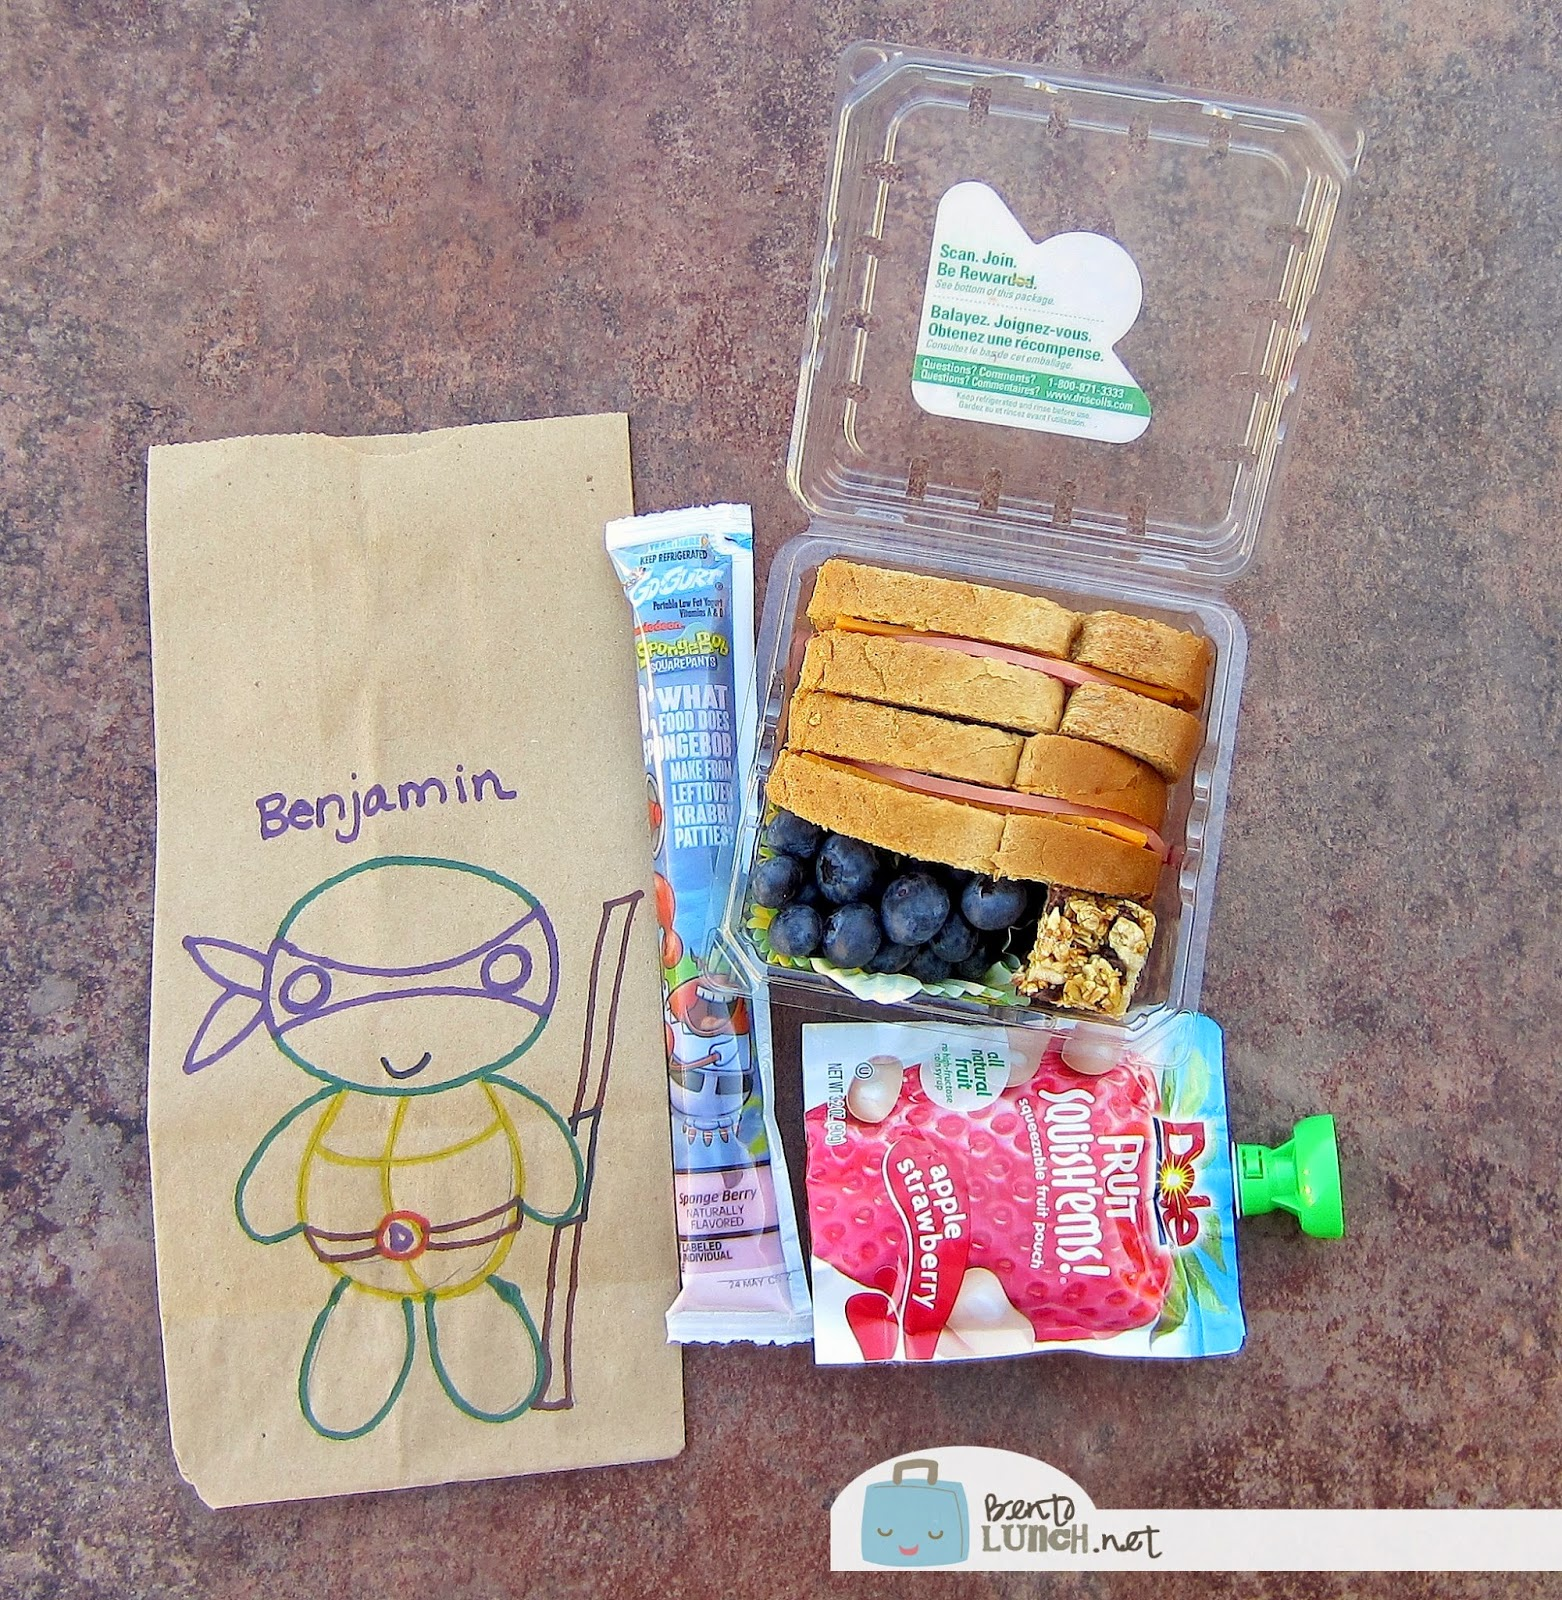 Disposable Lunch And Snacks So We Opted For Our Traditional Berry Containers Decorated Paper Bags In Lieu Of A Bento